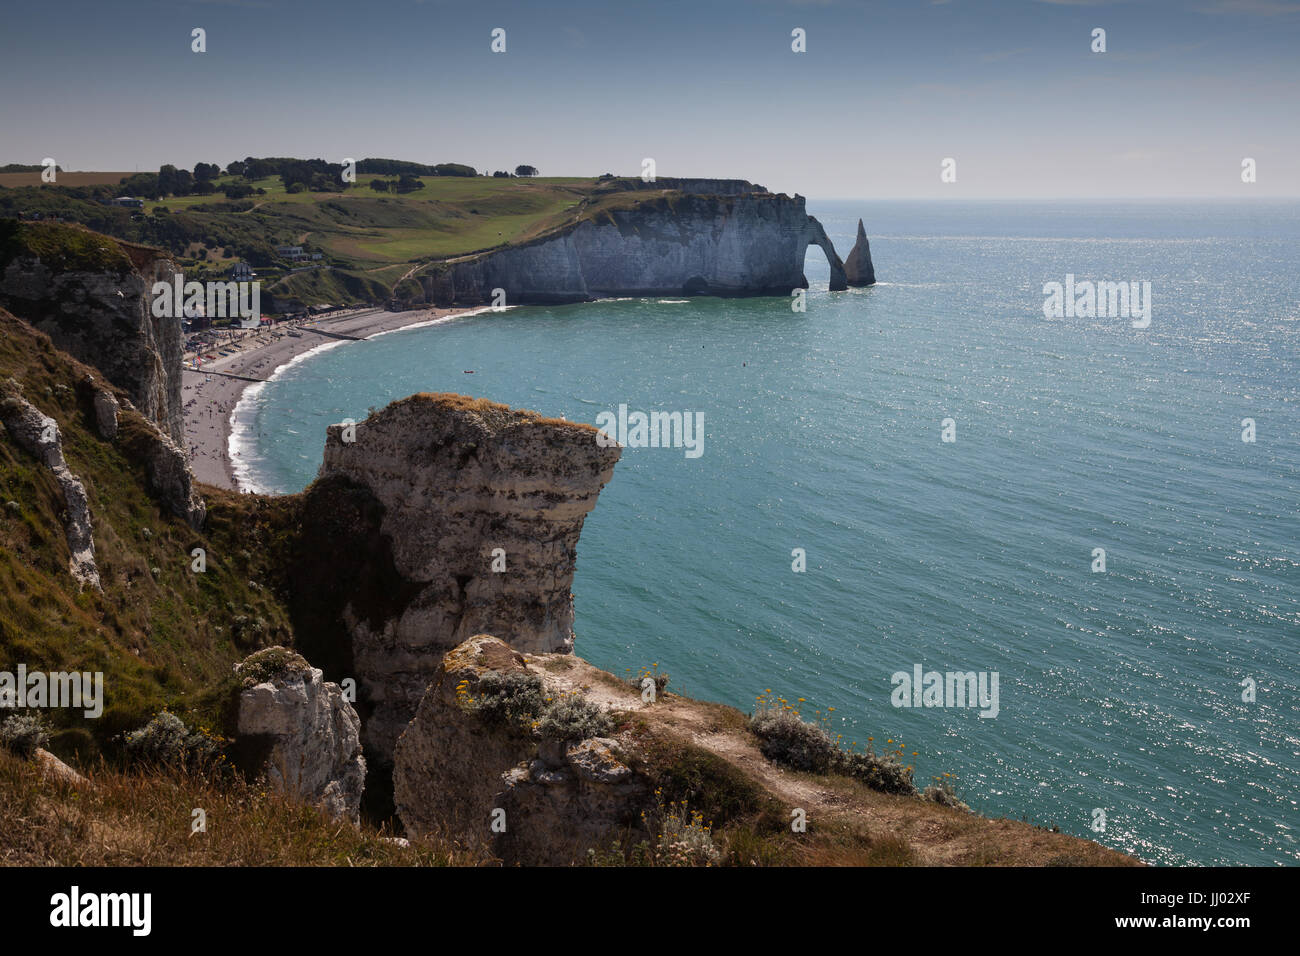 Etretat beach and coast - Stock Image